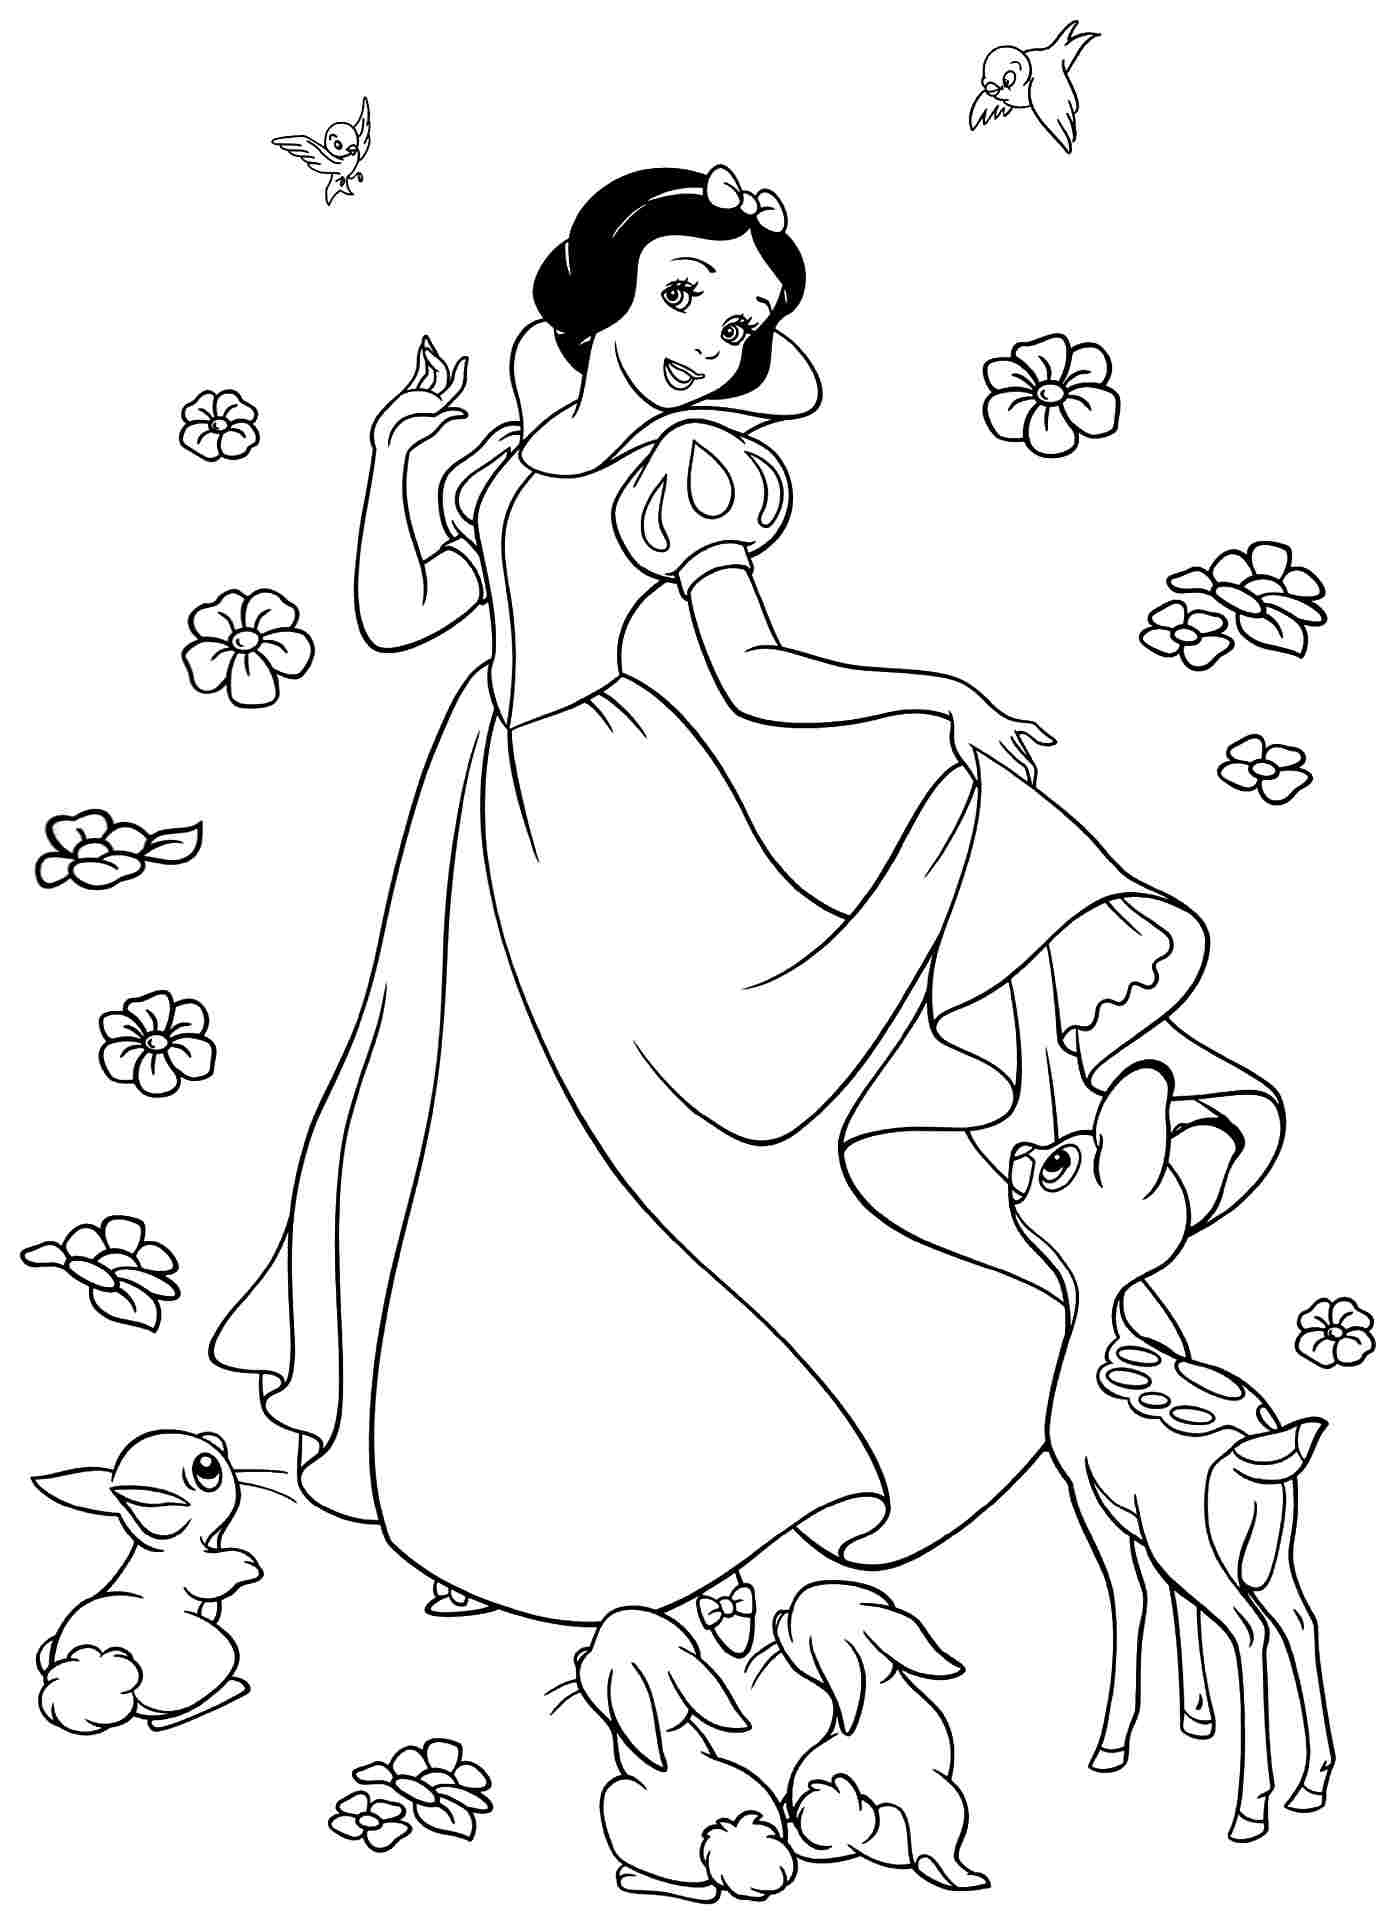 kids coloring pages snow white - photo#33